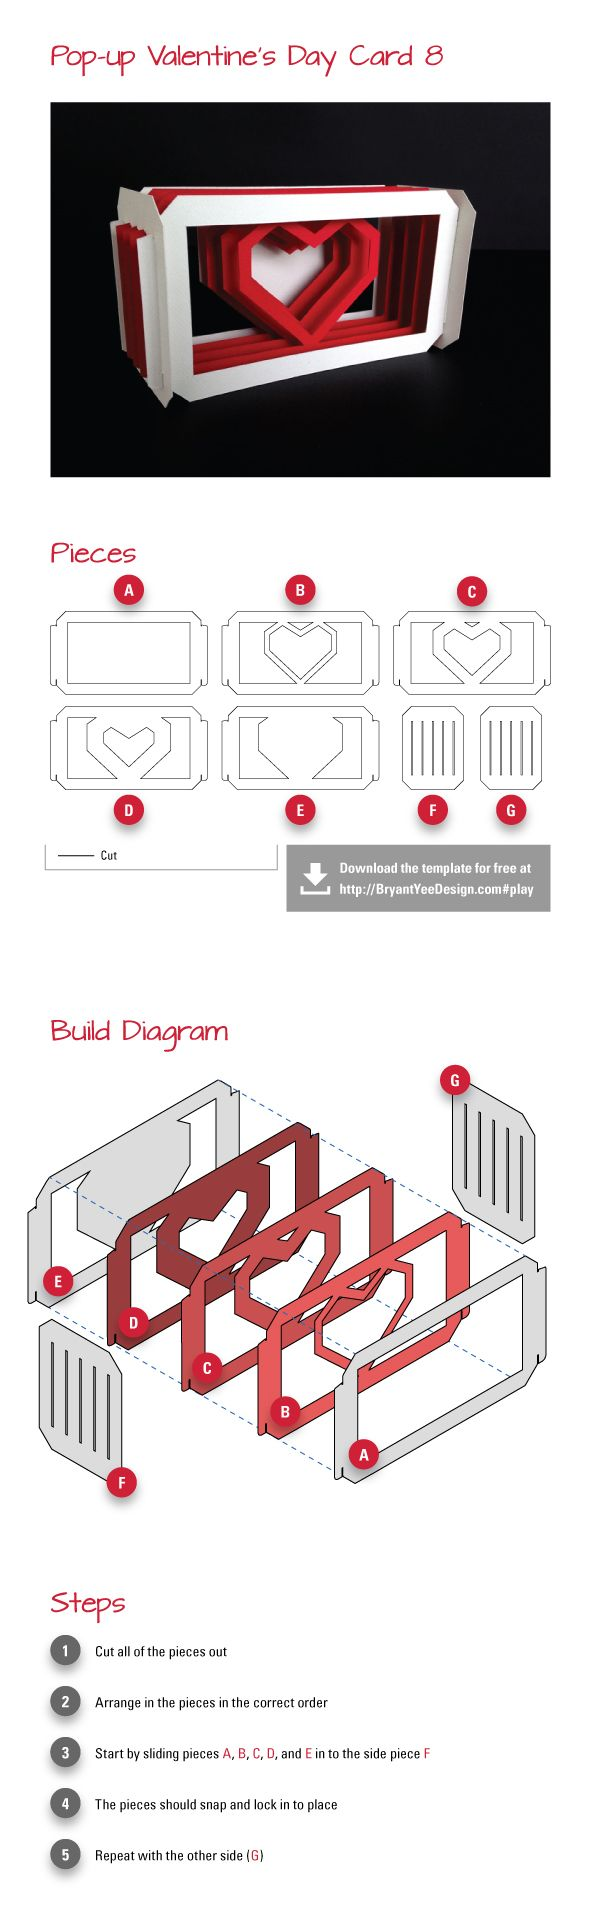 Doityourself Popup Valentines Day Card study 8  Patterns